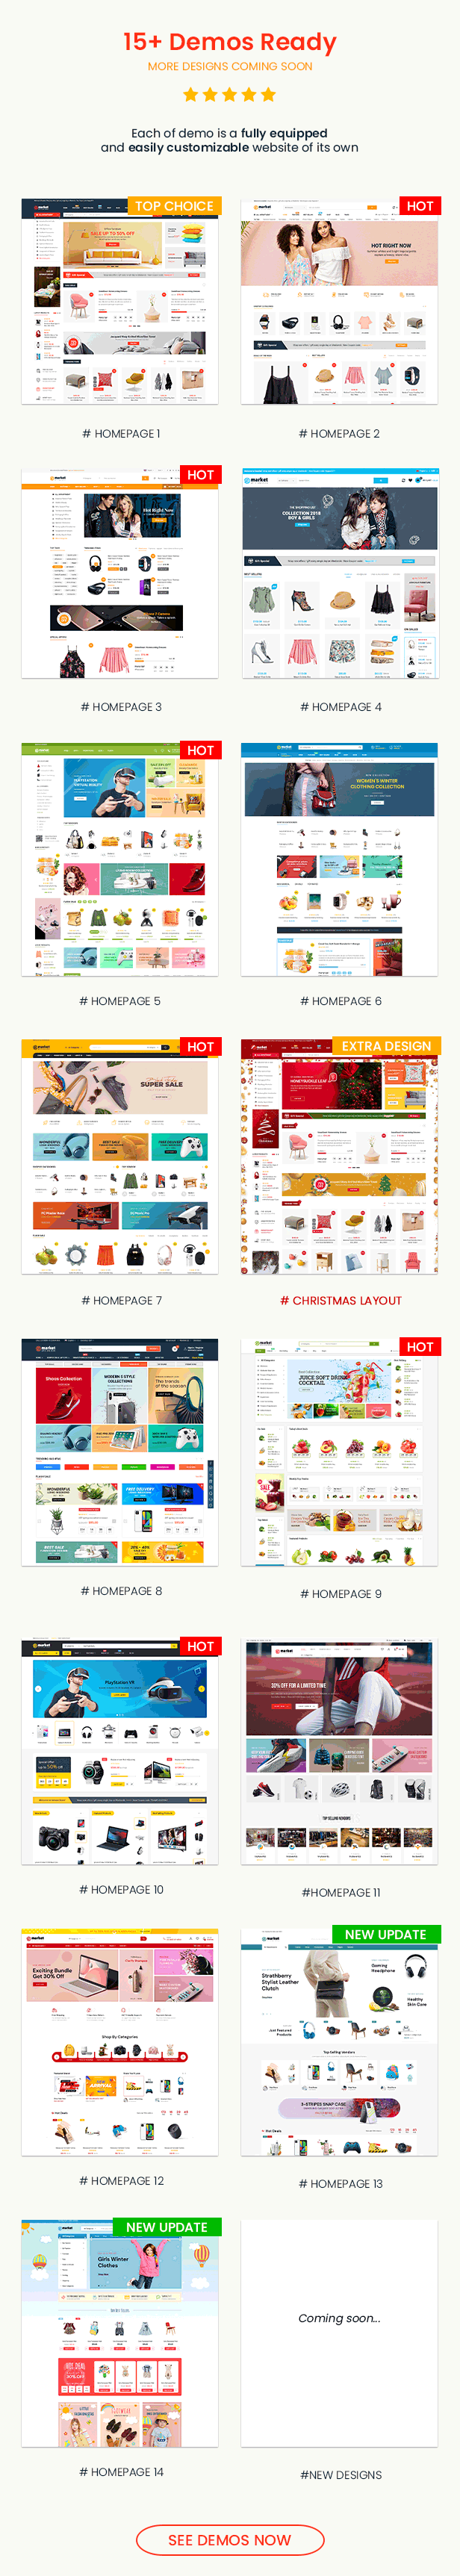 eMarket - Multi Vendor MarketPlace WordPress Theme - Elementor